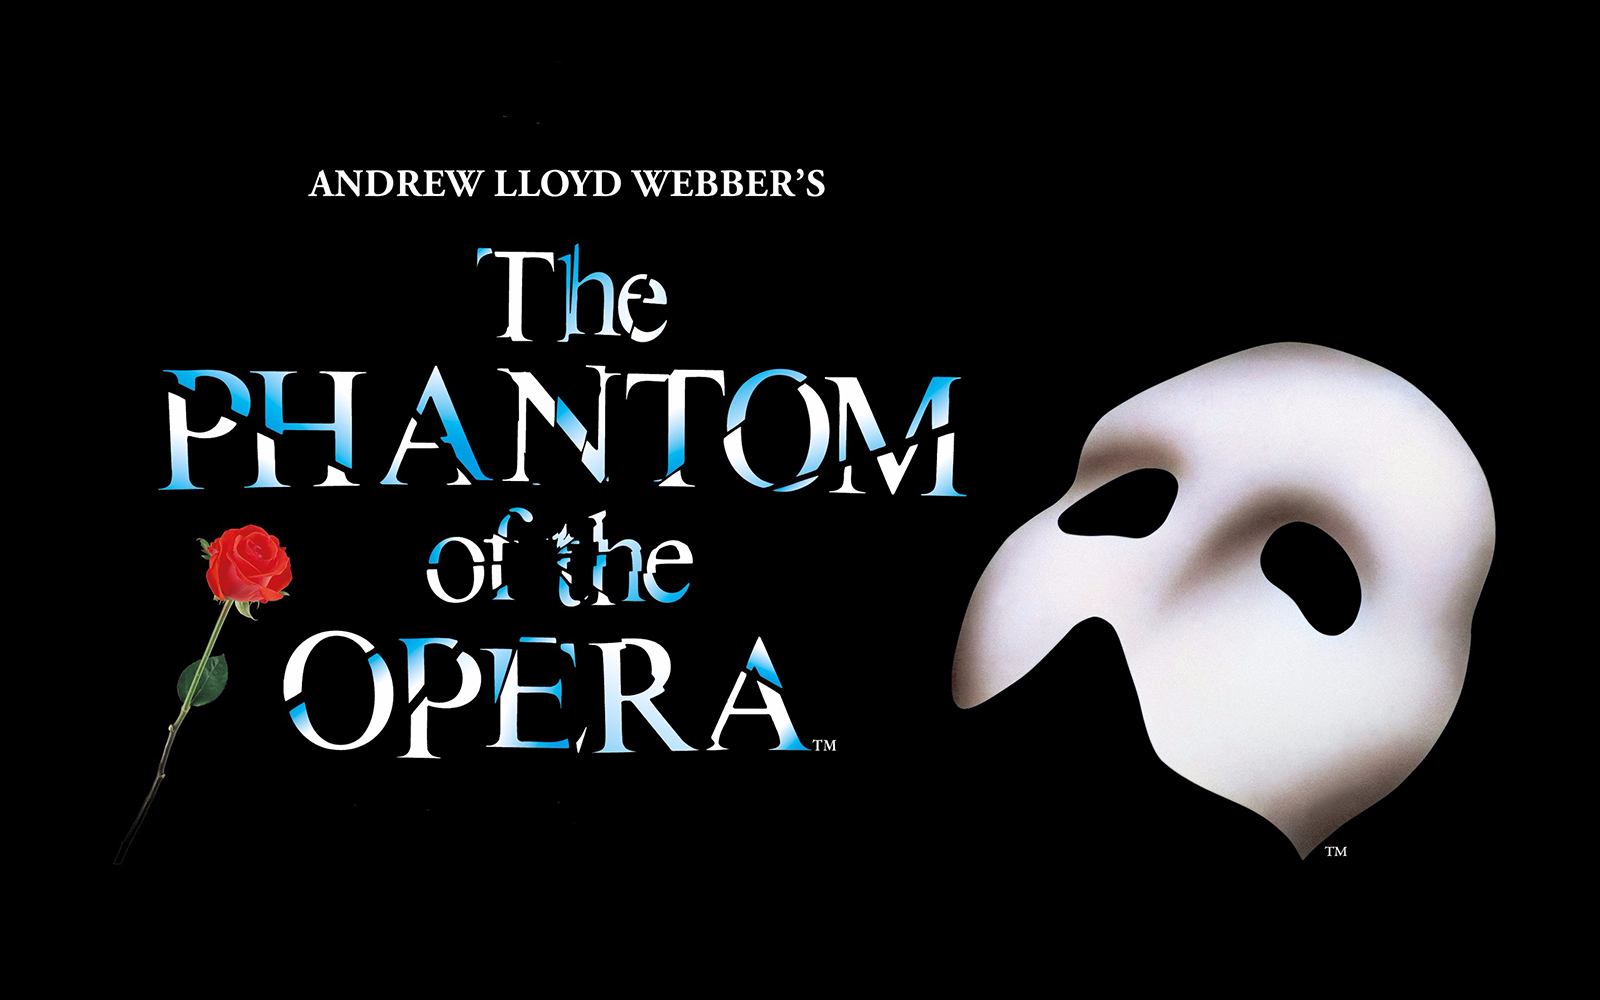 6844912b f3ec 417a 9051 82873ce545e3 3031 london the phantom of the opera 01